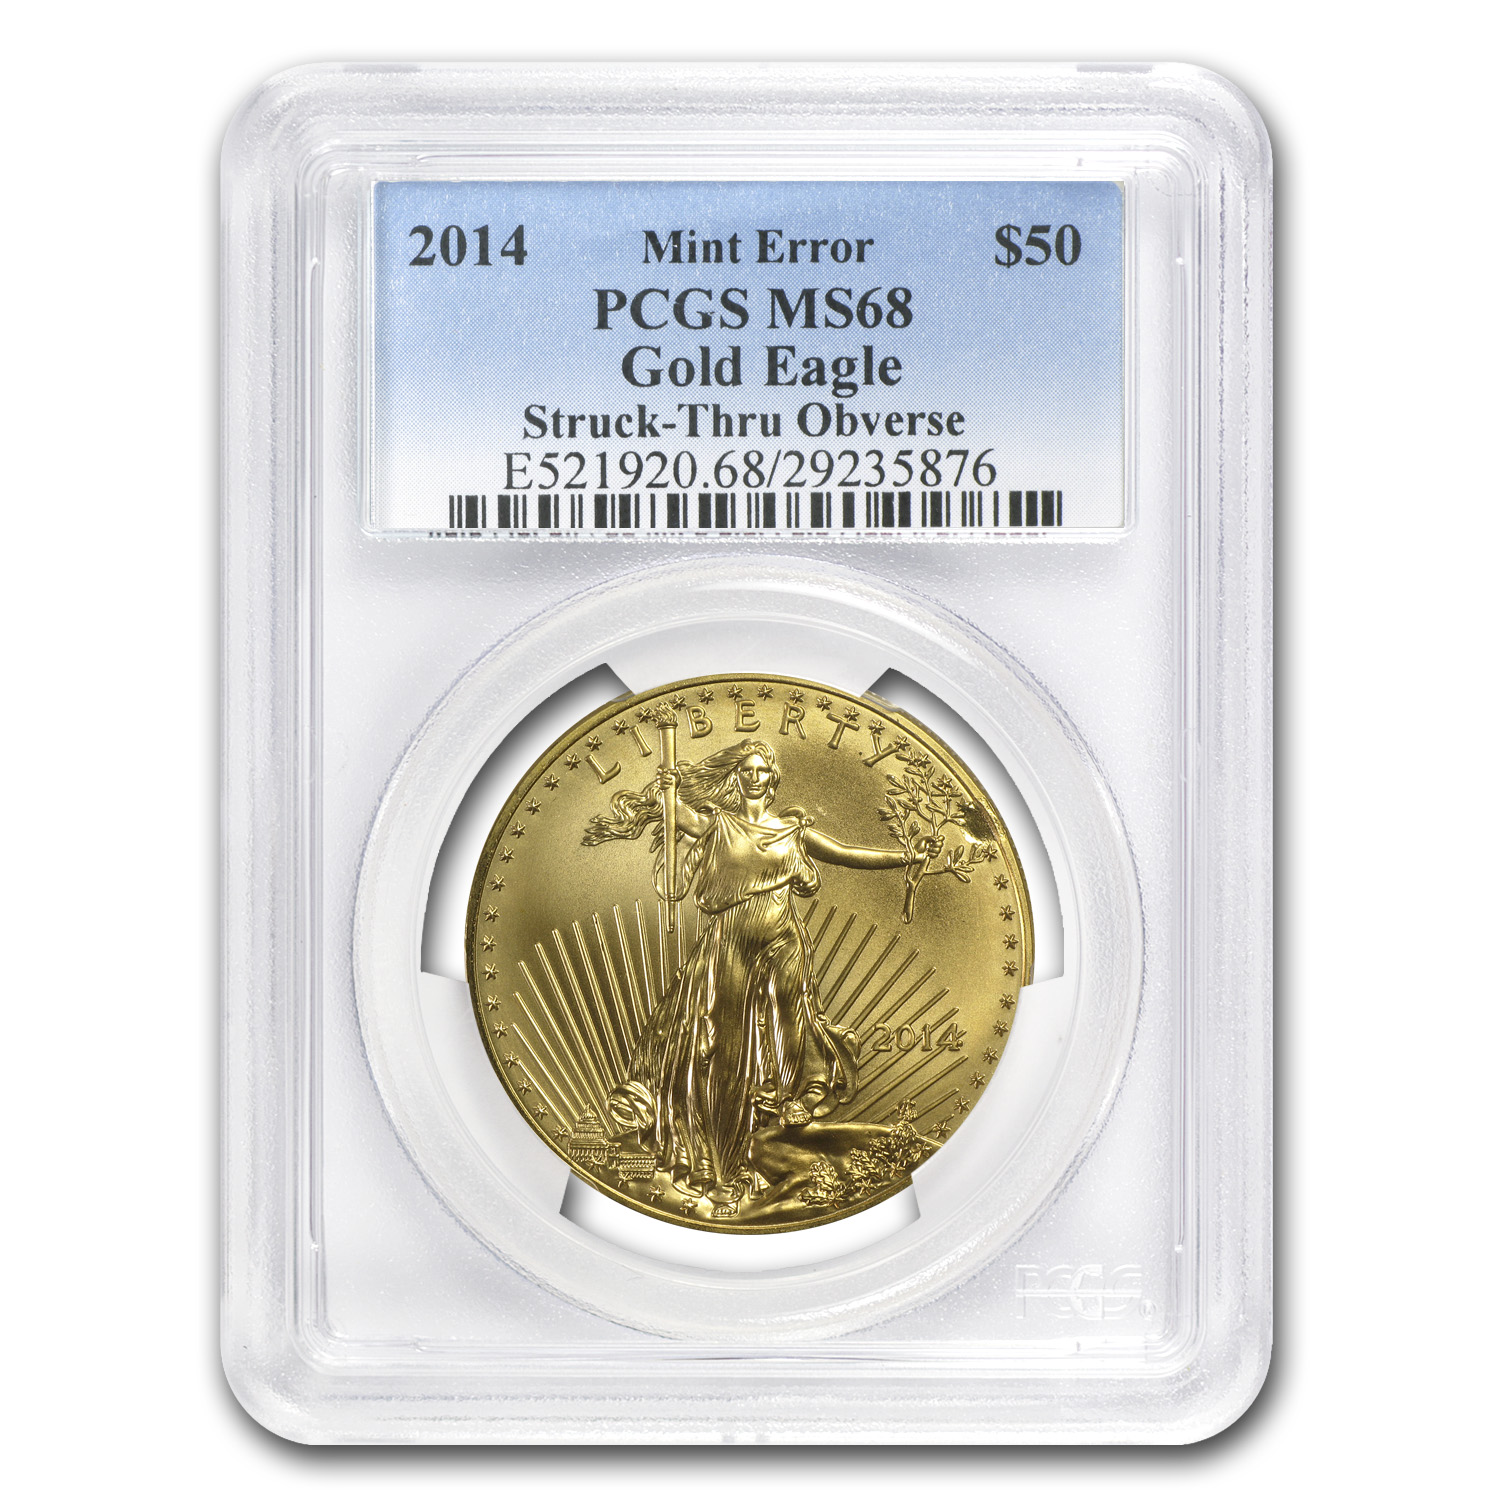 2014 1 oz Gold American Eagle Mint Error MS-68 PCGS